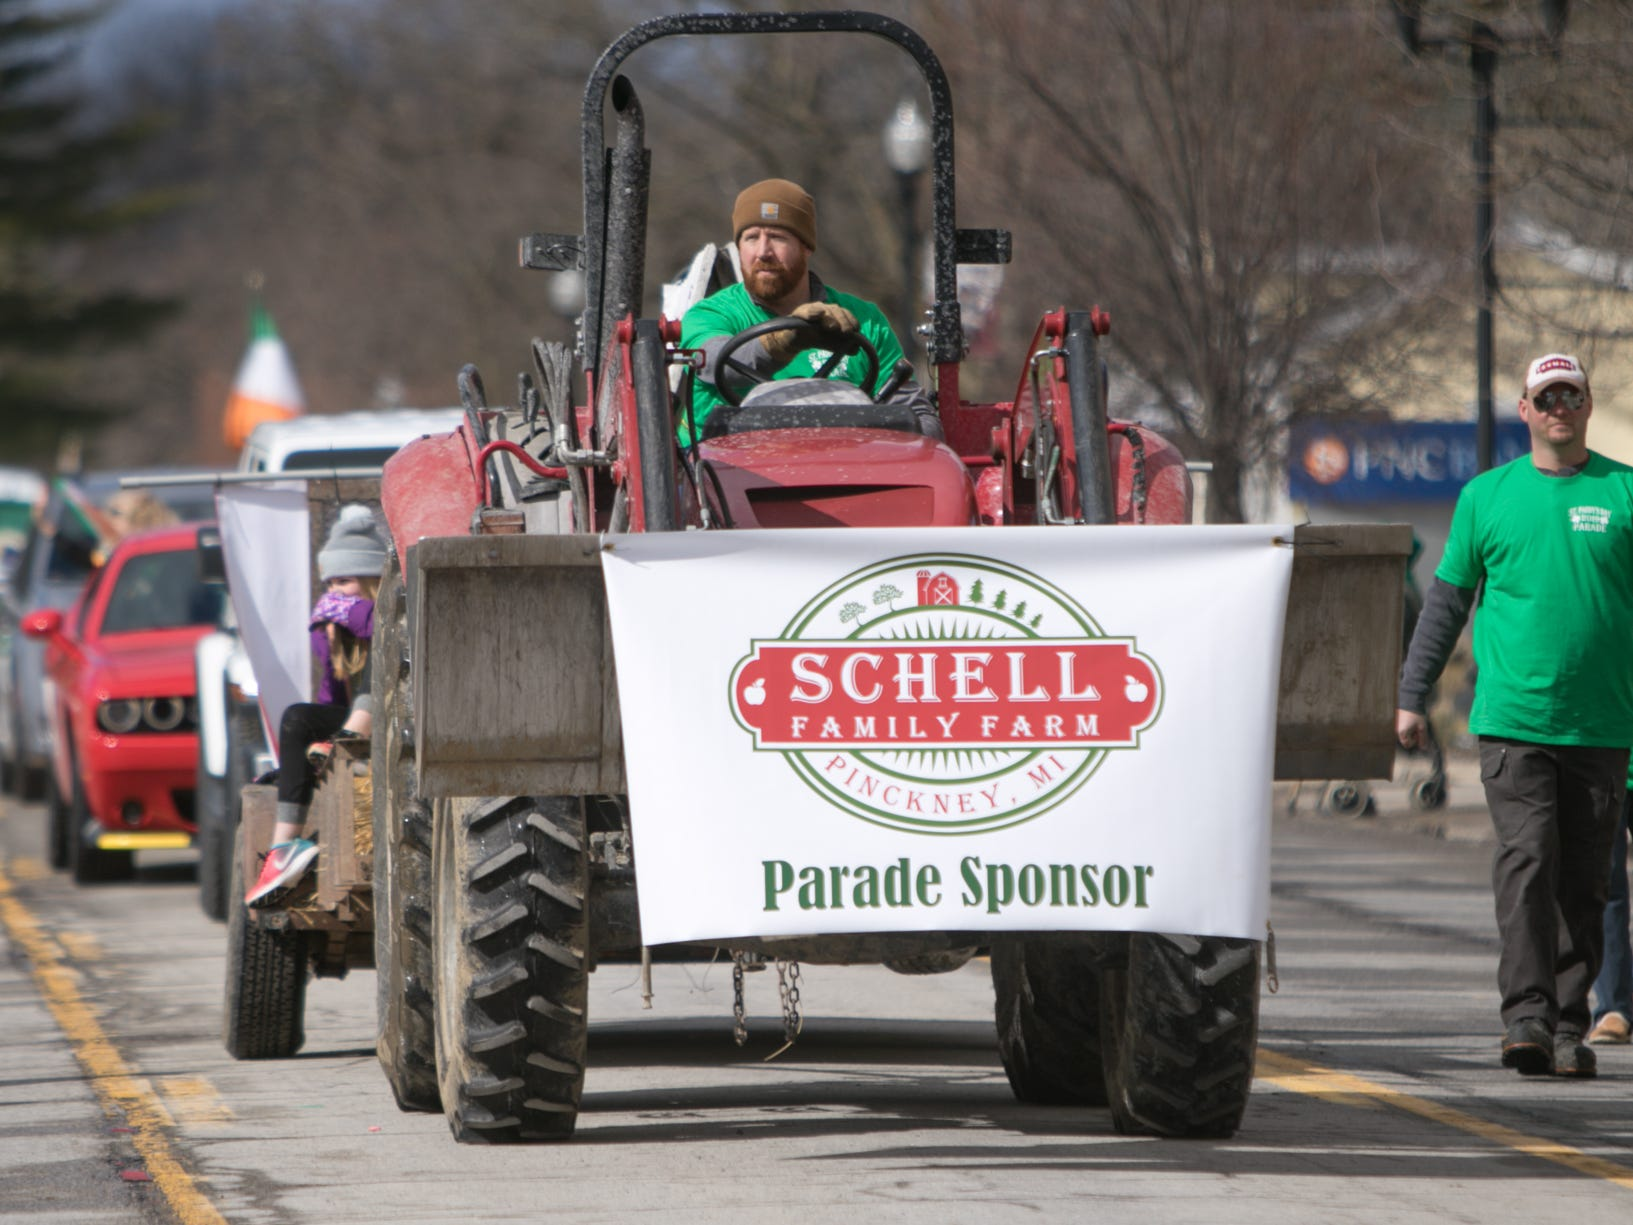 The Schell Family Farm, accompanied by members of the Pinckney High School baseball program, head down the St. Patrick's Day parade route Saturday, March 16, 2019.